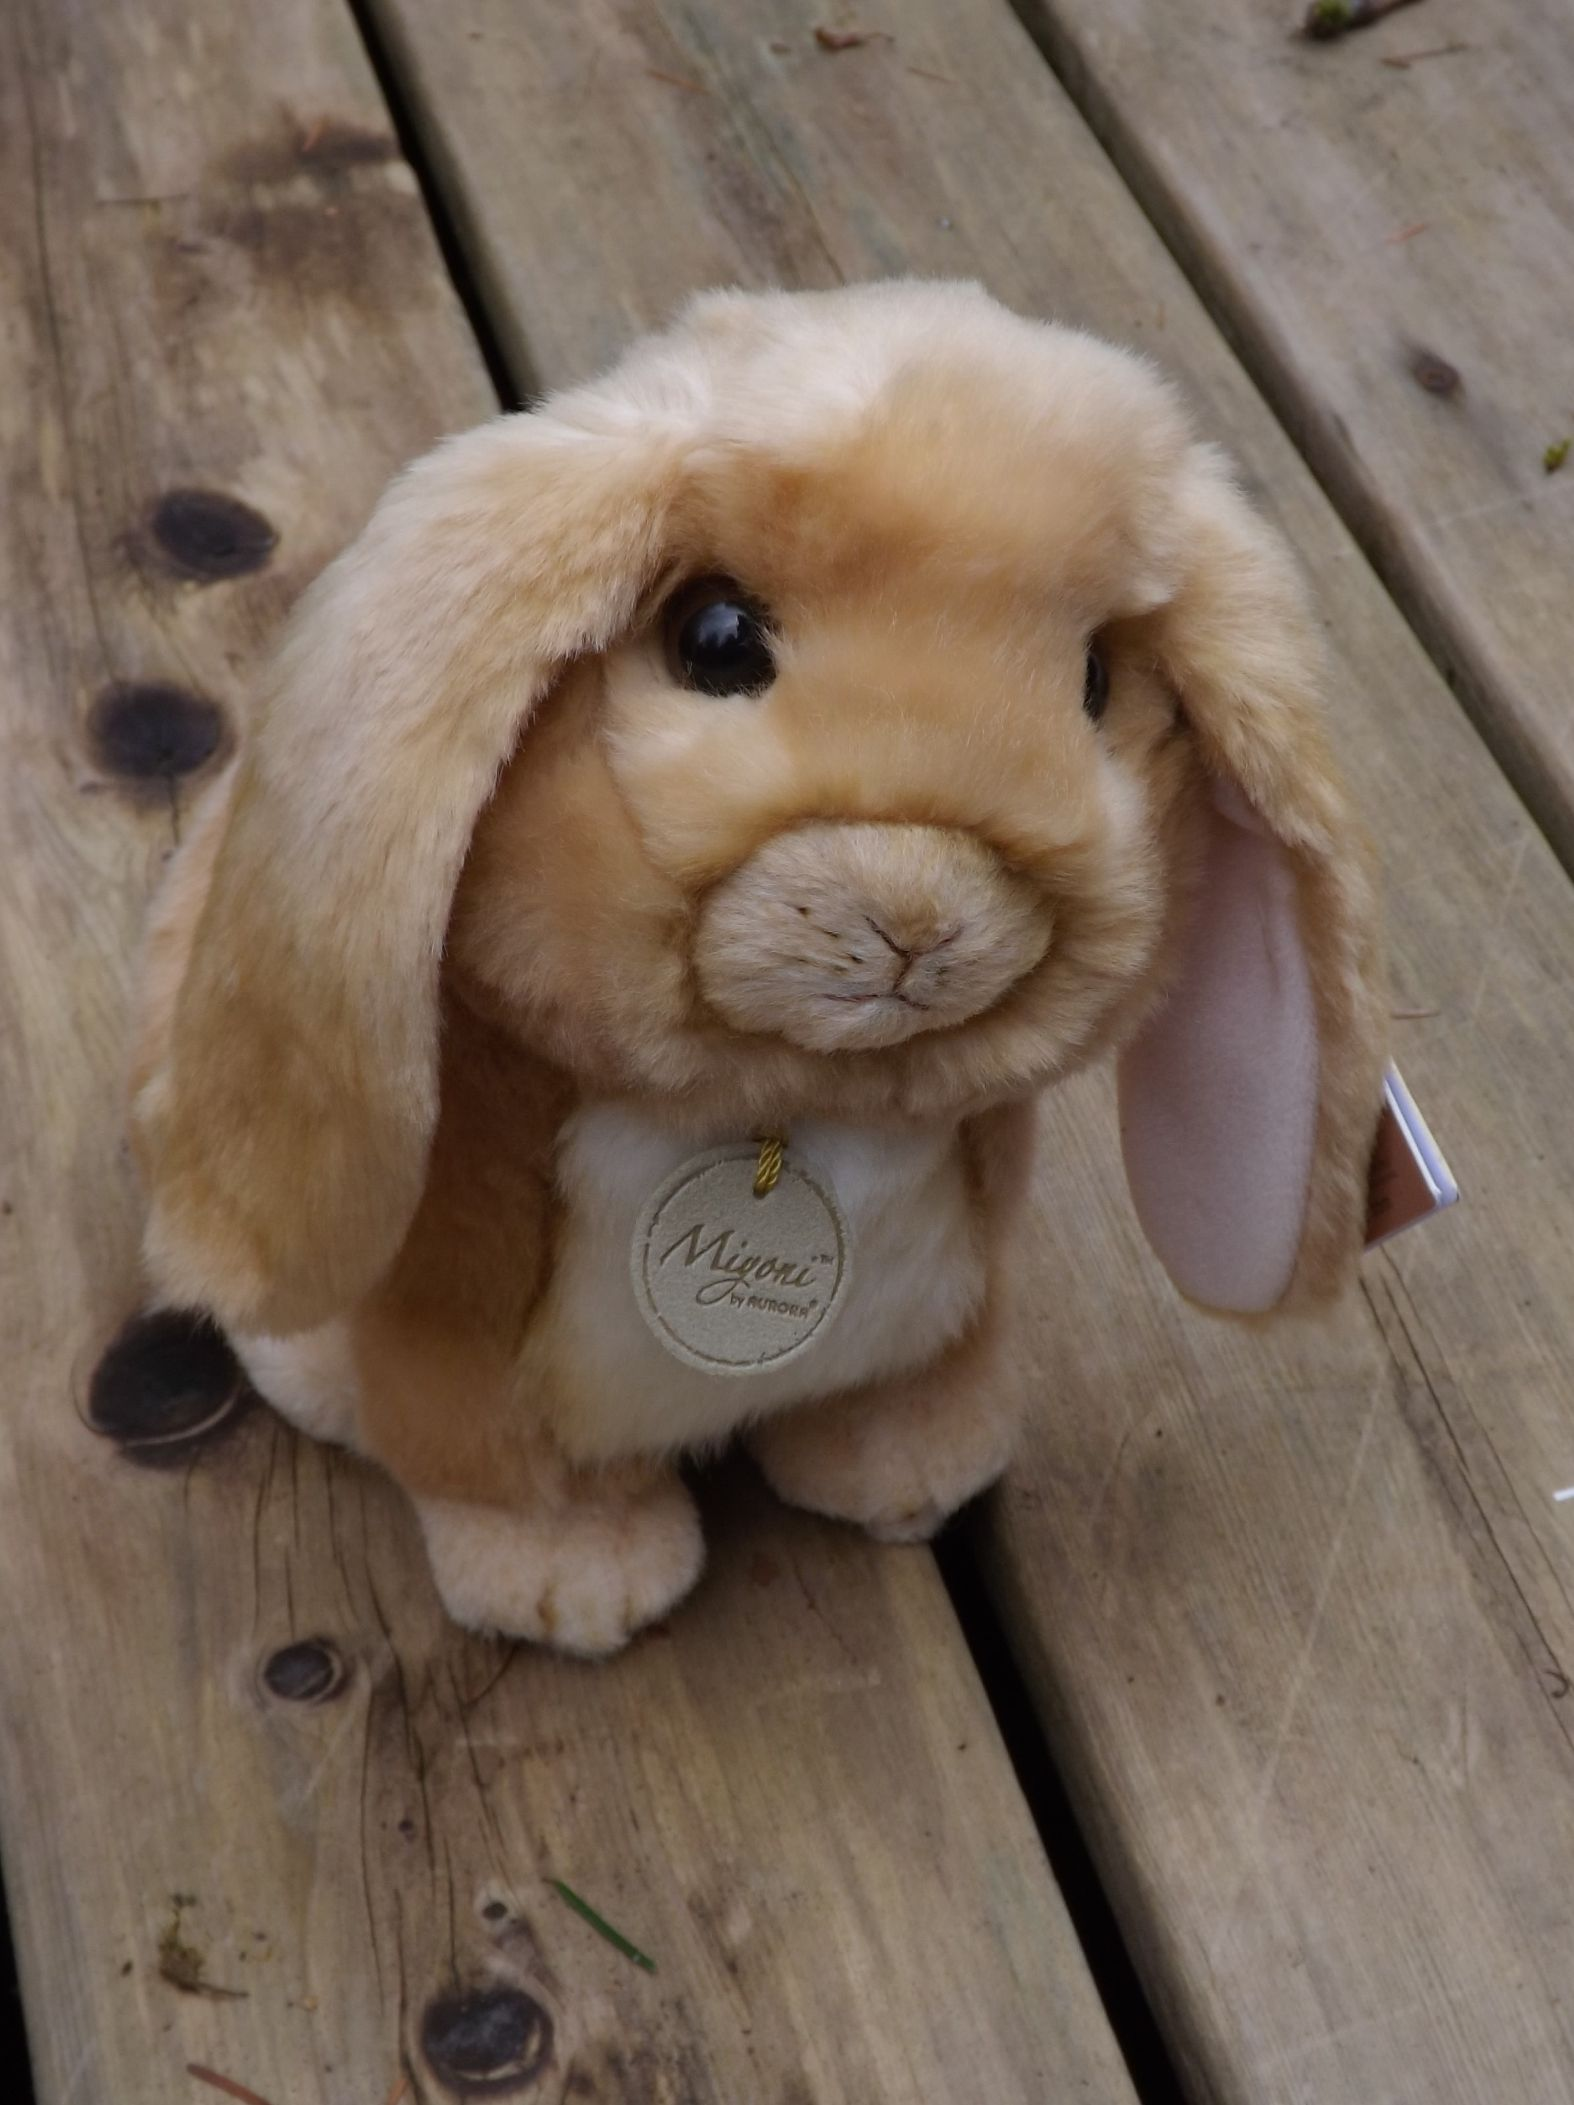 A26171-Stuffed-Lop-Eared-Tan-Rabbit